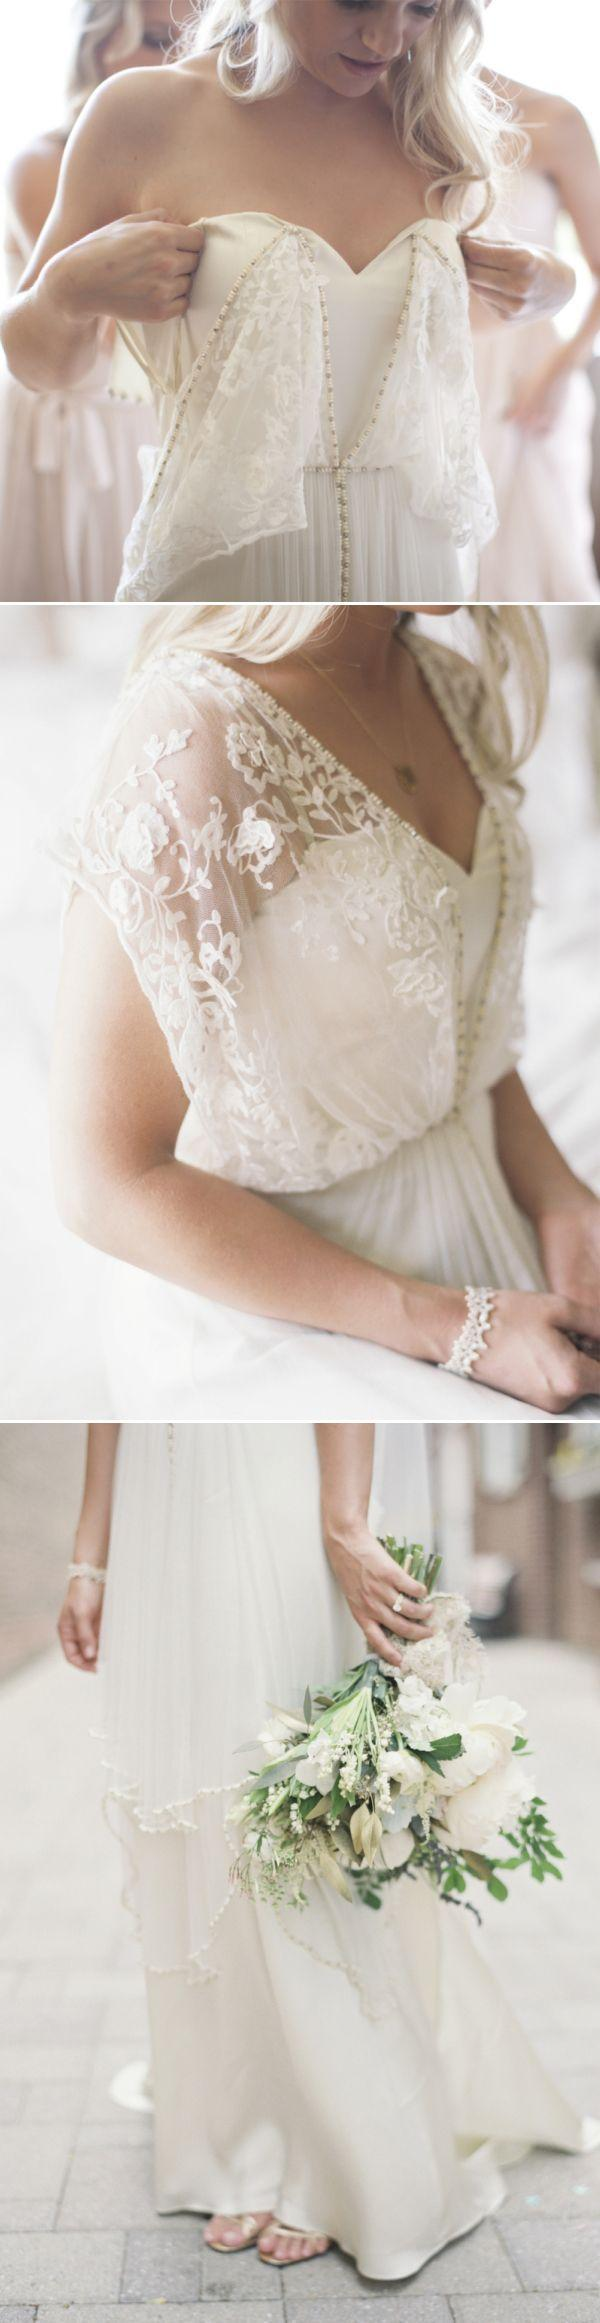 Mariage - Wedding Dresses For 2017 Brides Bridesmaid And Flower Girls